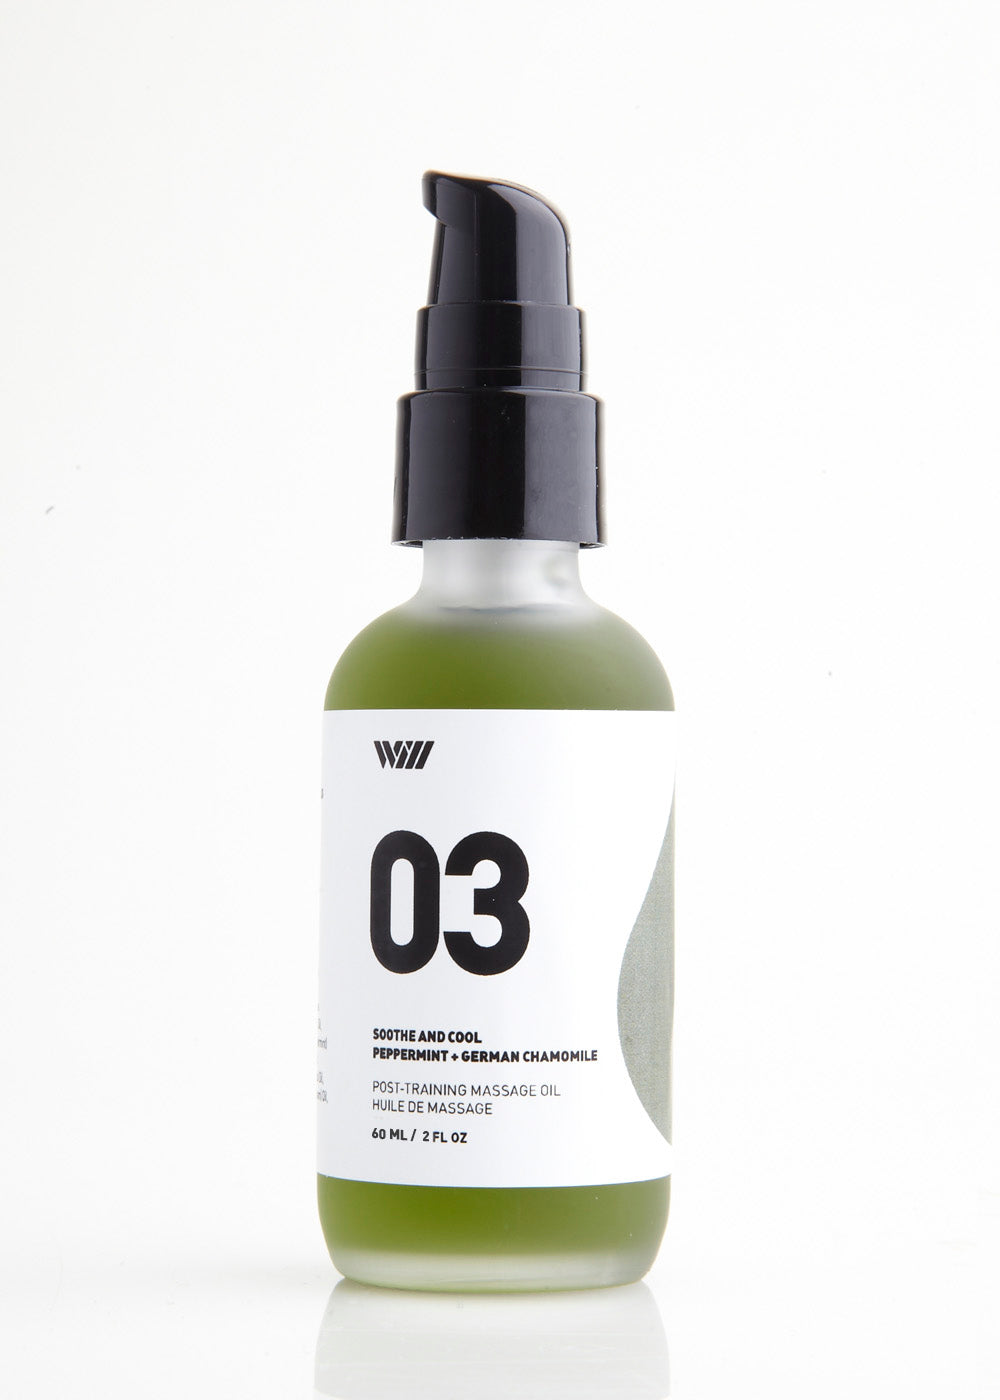 03 Soothe and Cool Massage Oil | Peppermint and German Chamomile